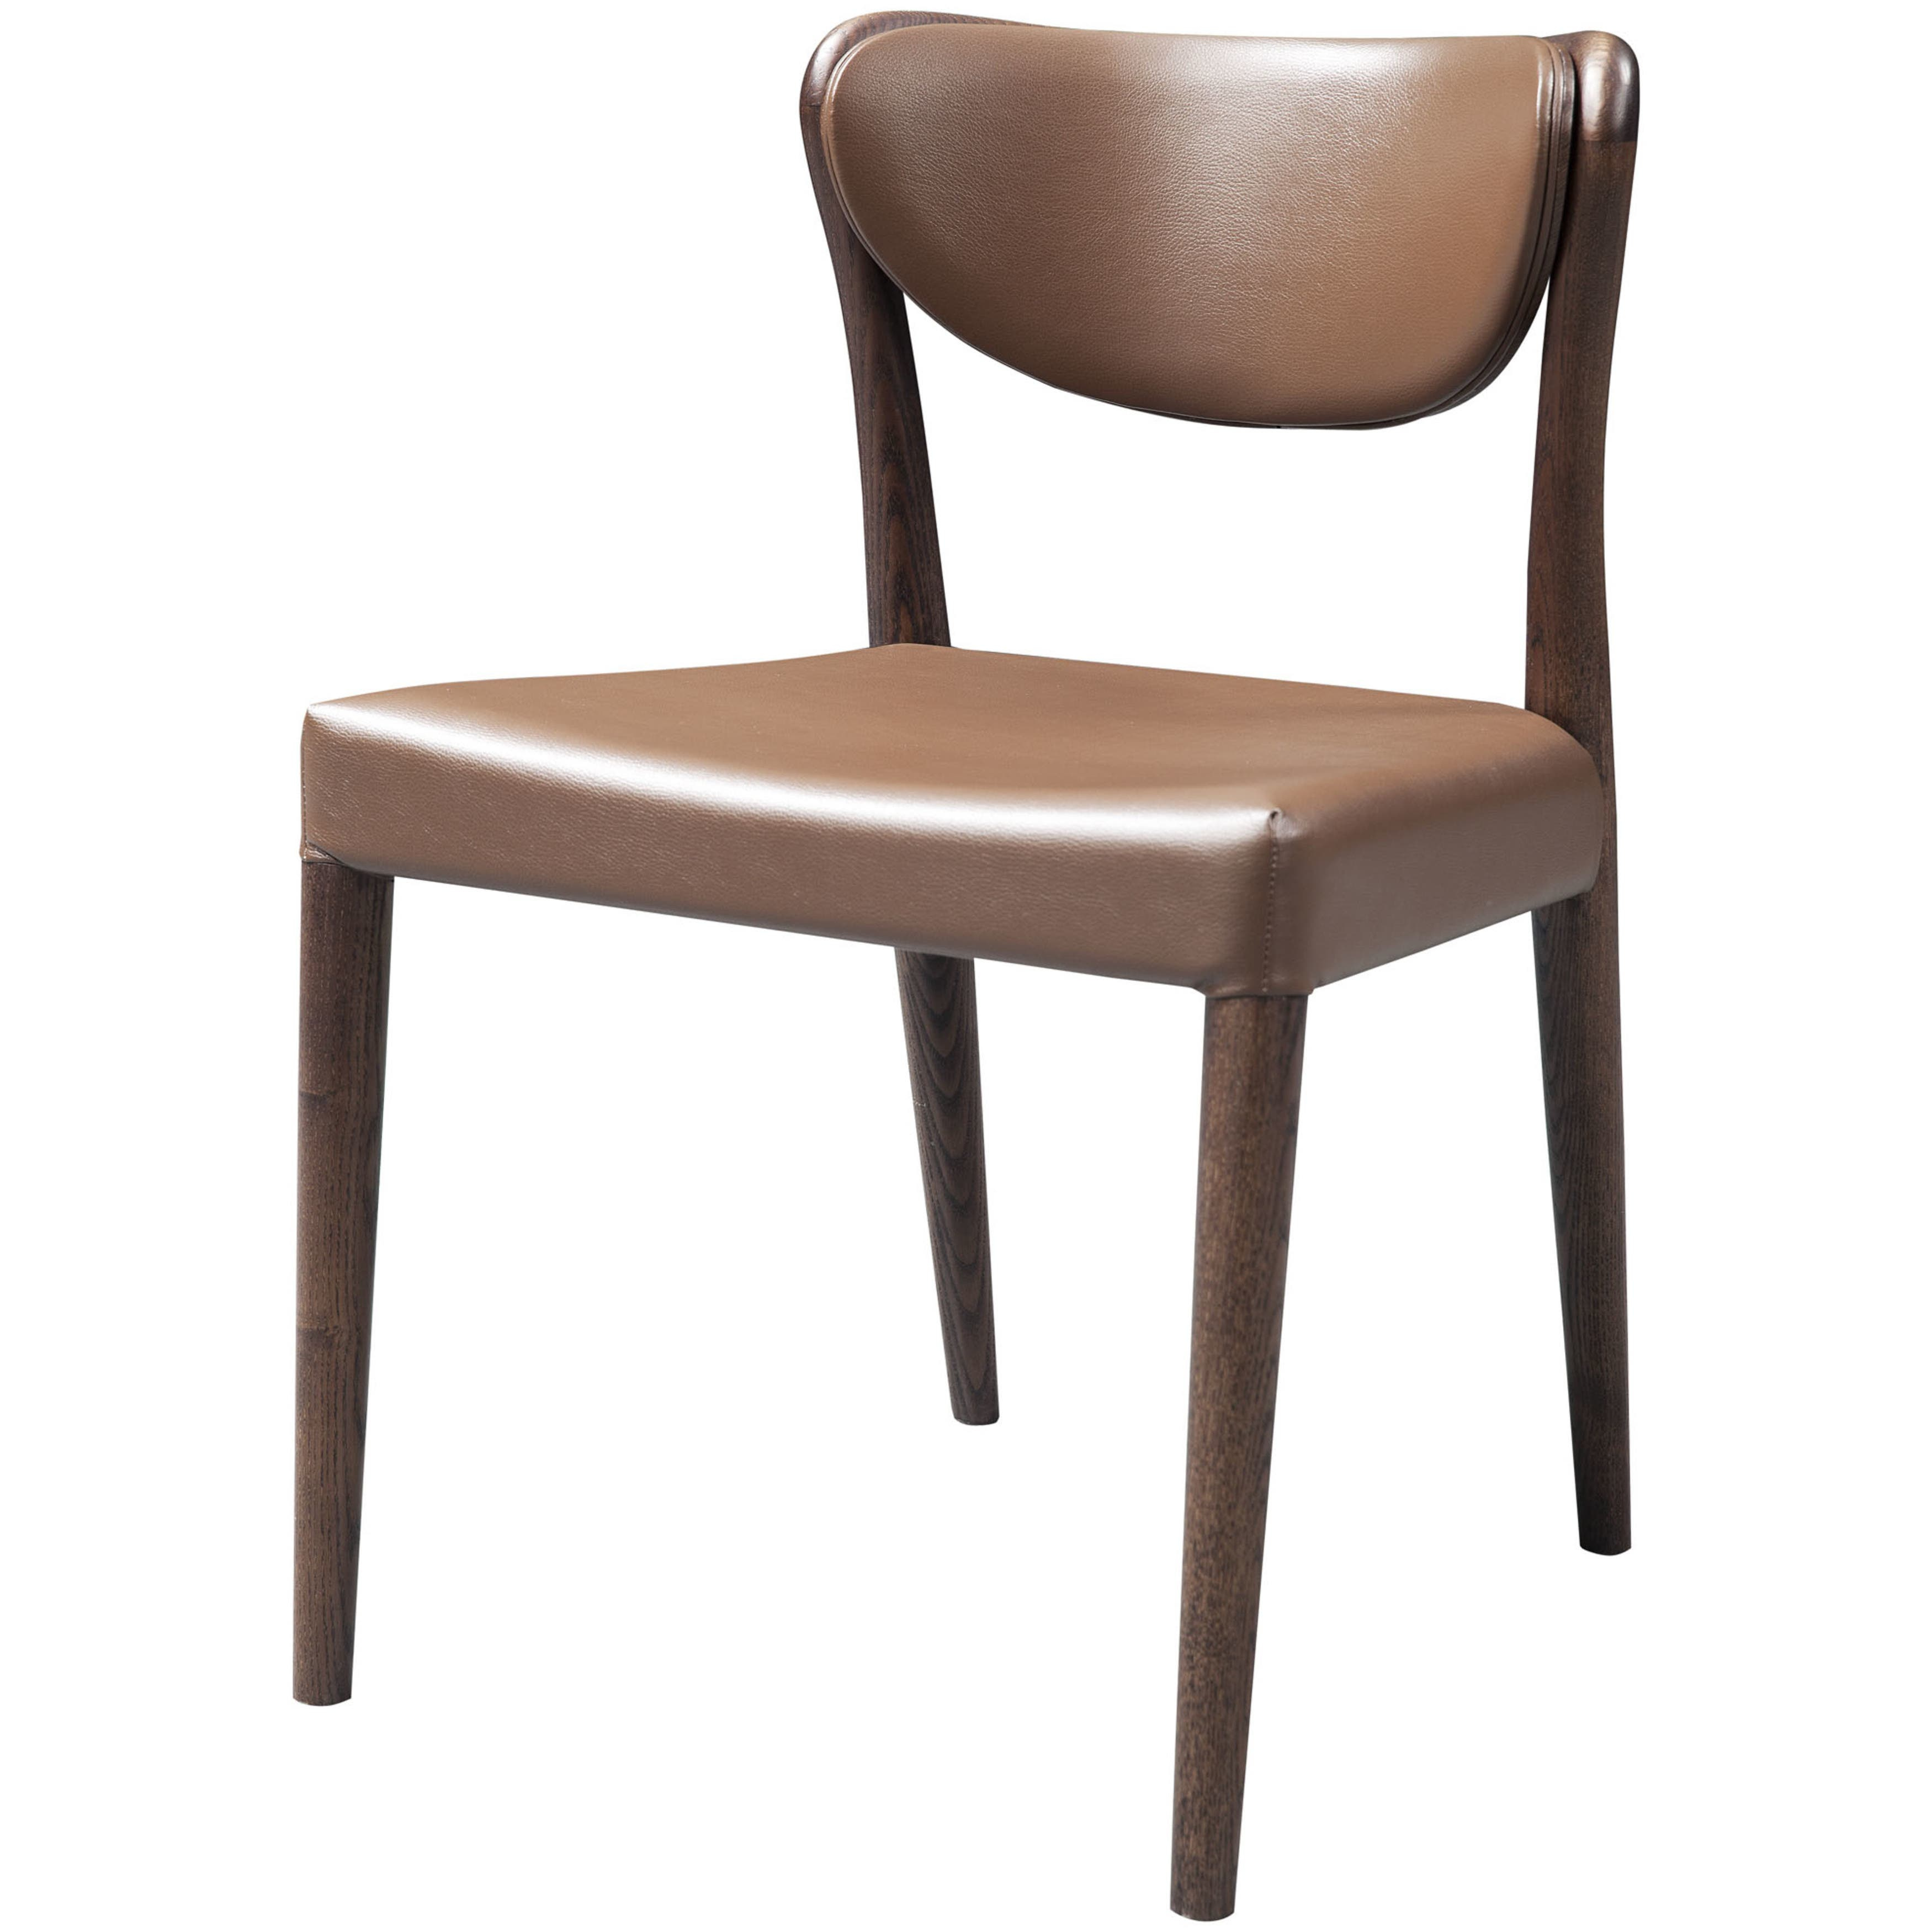 Dining Room amp Kitchen Chairs For Less Overstockcom : Modrest Union Modern Brown Oak Dining Chair Set of 2 56d99ef5 7369 4973 ad69 abb30cf21734 from www.overstock.com size 3500 x 3500 jpeg 571kB